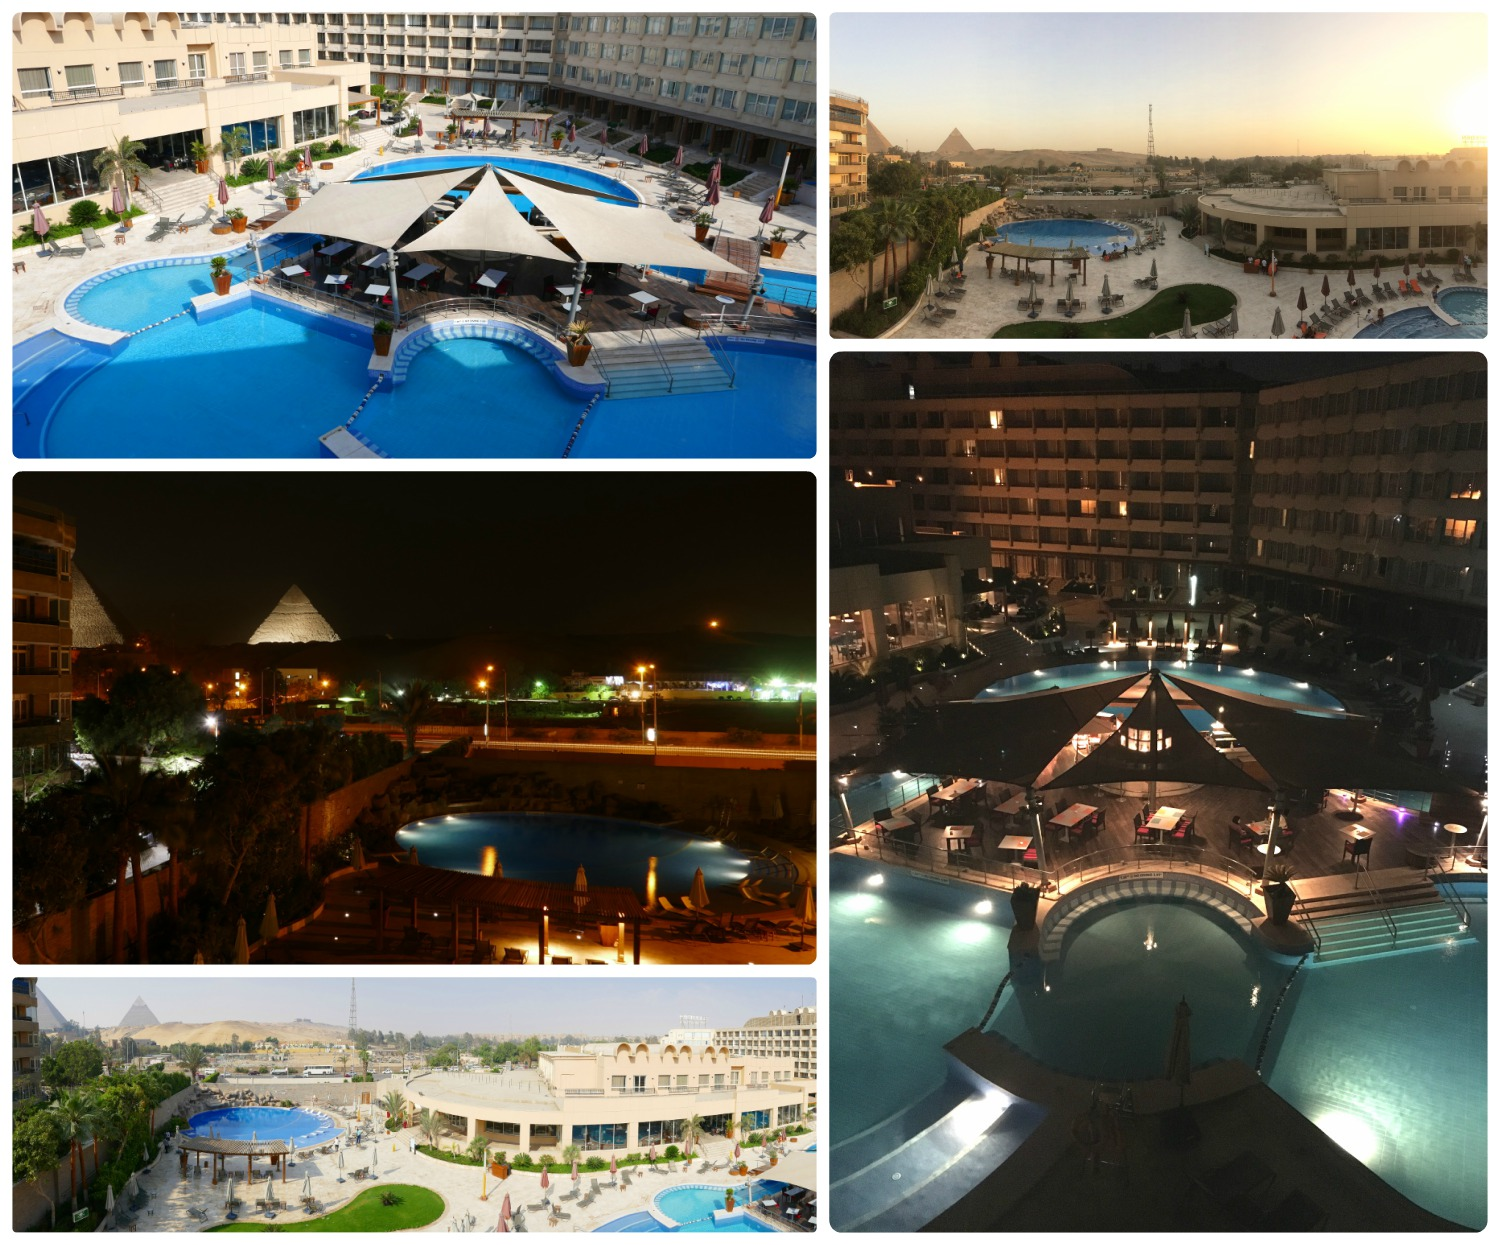 Views from the balcony in our hotel room. Clockwise (from the top): The pool and restaurant bar, the pools and pyramids at sunset, the pool area lit up at night, panoramic view with the pyramids, the pyramids were lit up only one of the nights we were there.